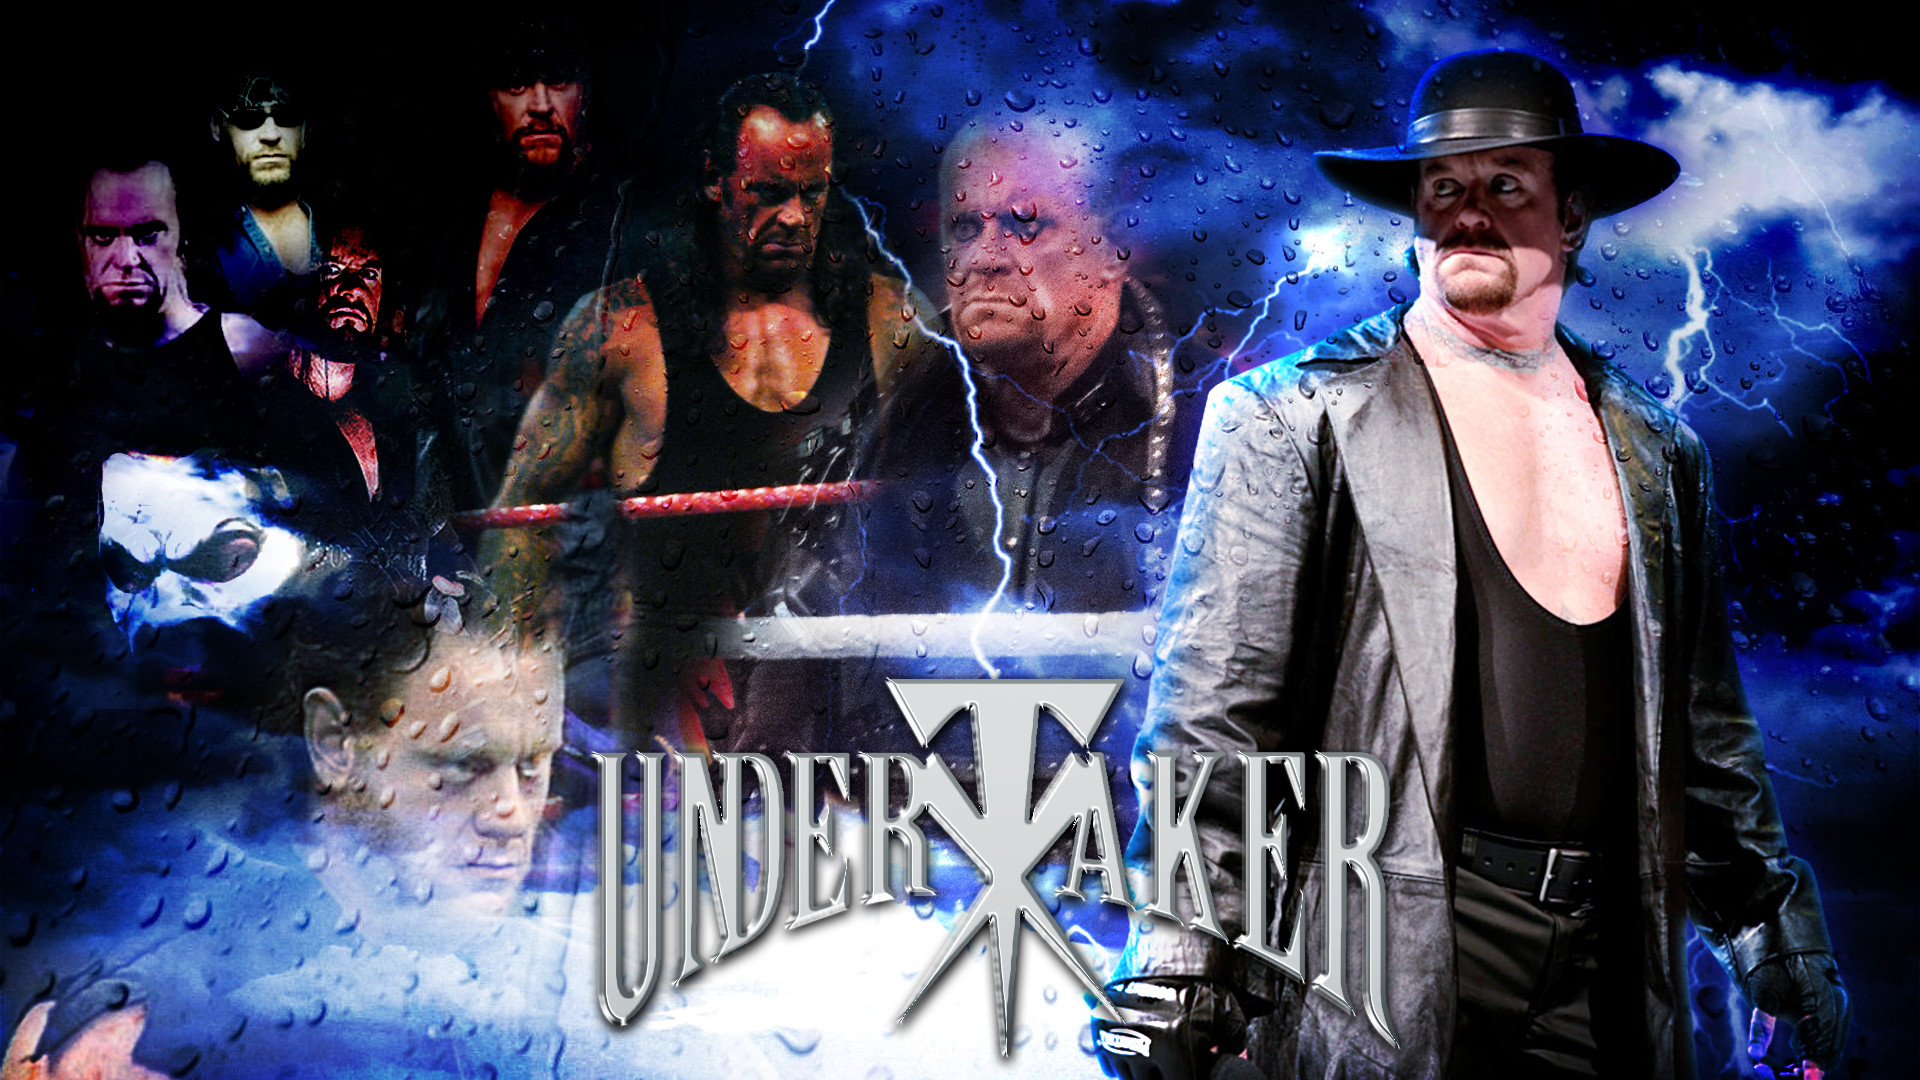 1920x1080 WWE Undertaker Wallpaper 2016 by LastBreathGFX WWE Undertaker Wallpaper  2016 by LastBreathGFX